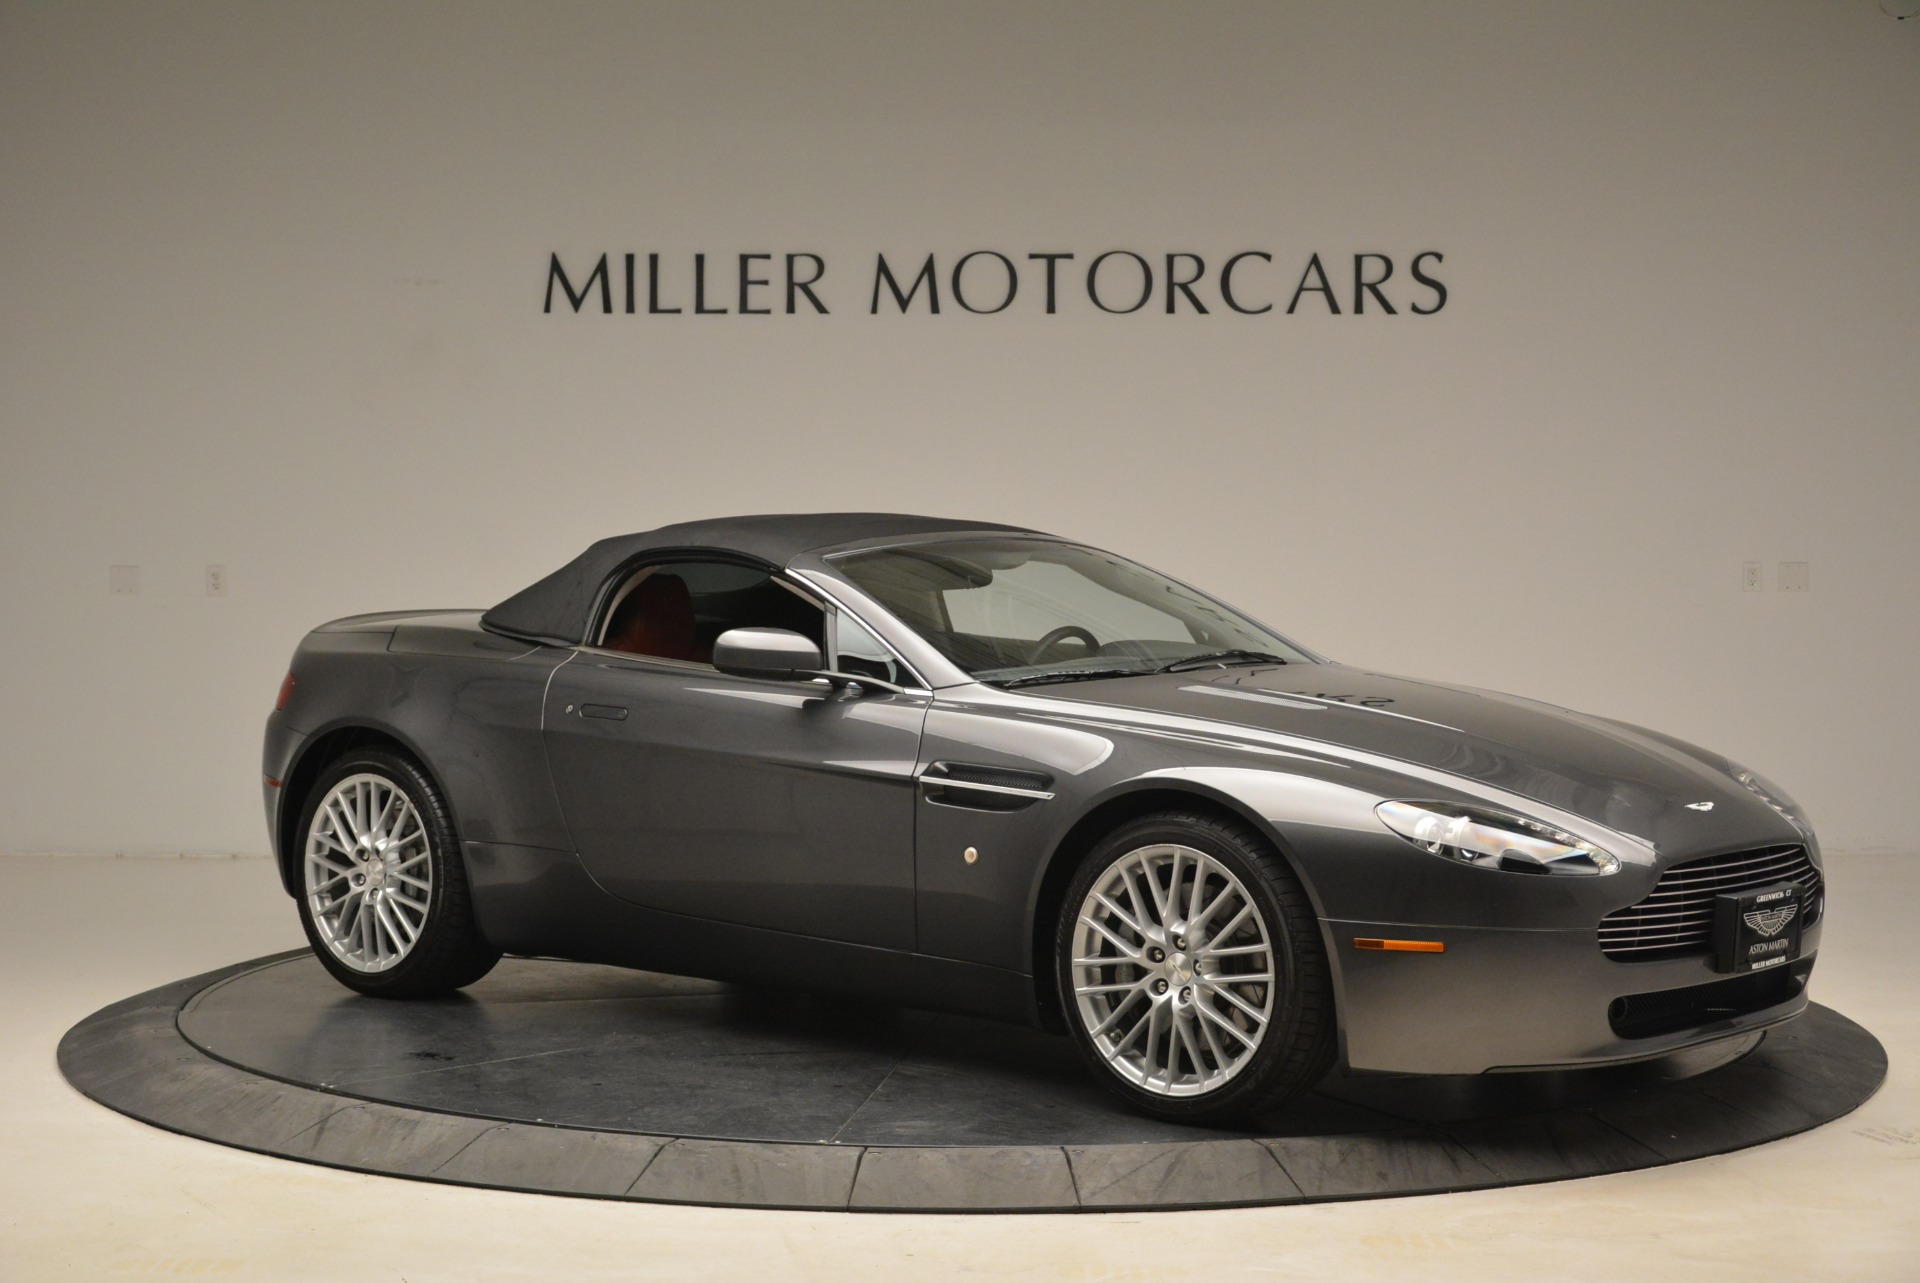 Used 2009 Aston Martin V8 Vantage Roadster For Sale In Greenwich, CT 2123_p22